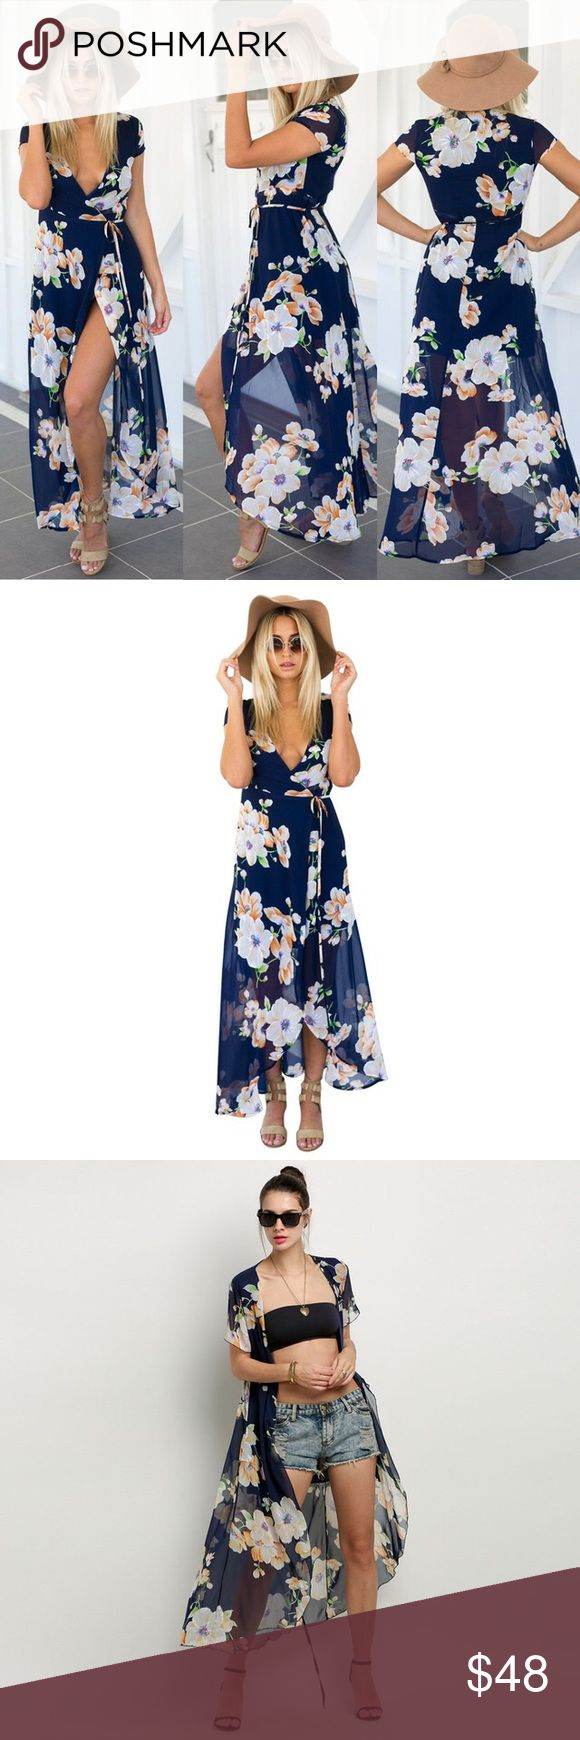 """New❗️""""Catalina"""" Floral Chiffon Maxi Wrap Dress🌸 The """"Catalina"""" Maxi Dress is a floral wrap maxi dress in navy. It can be worn open or closed. Tie strings allow for a little flexibility in fit. The dress has navy lining until mid thigh, at which point the rest of the dress is sheer chiffon for a sexy and classic look. Dress is true to size. Pair with a sun hat, strappy sandals, or a boho choker. 🌸 49 inches in length. Dresses Maxi"""